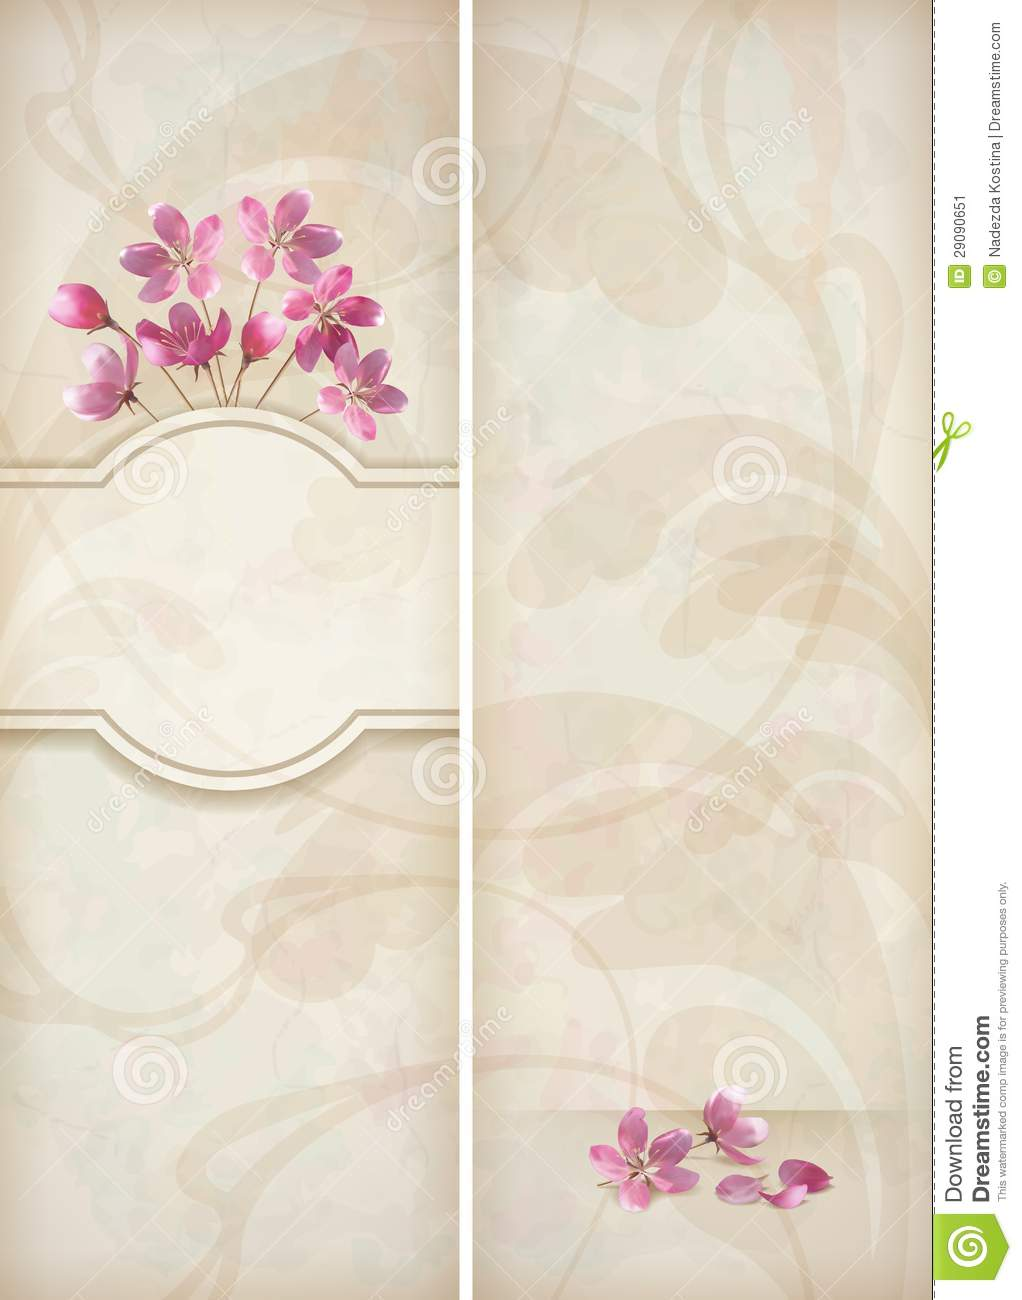 Bouquet Of Flowers Template